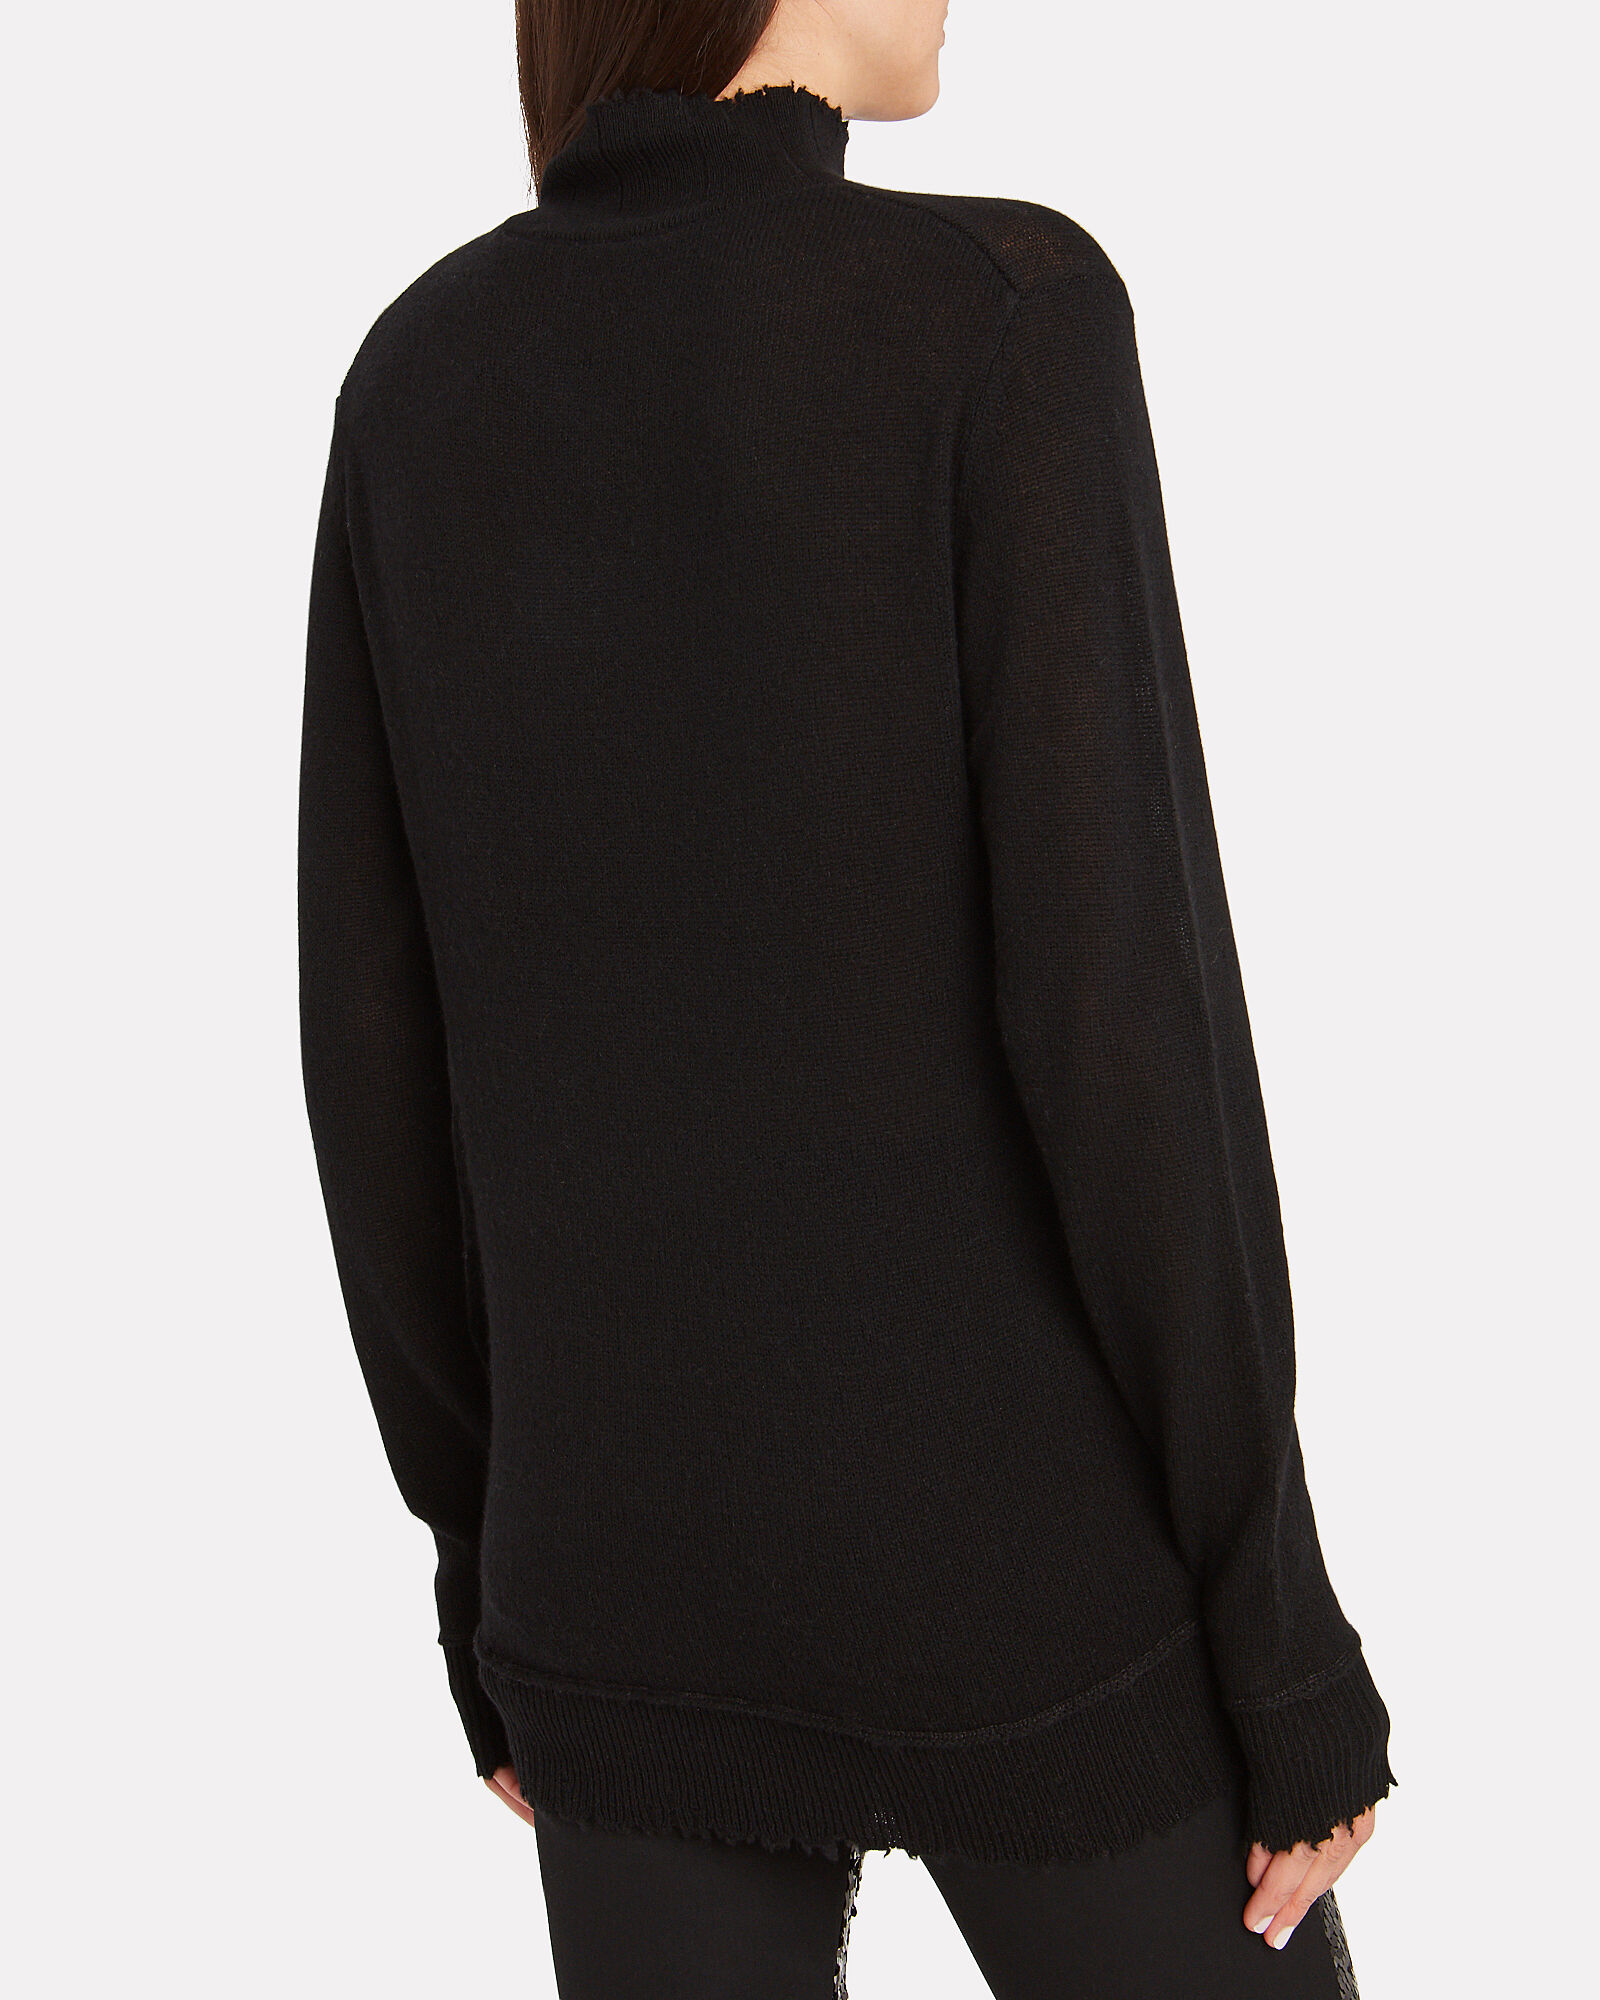 Distressed Edge Cashmere Turtleneck, BLACK, hi-res